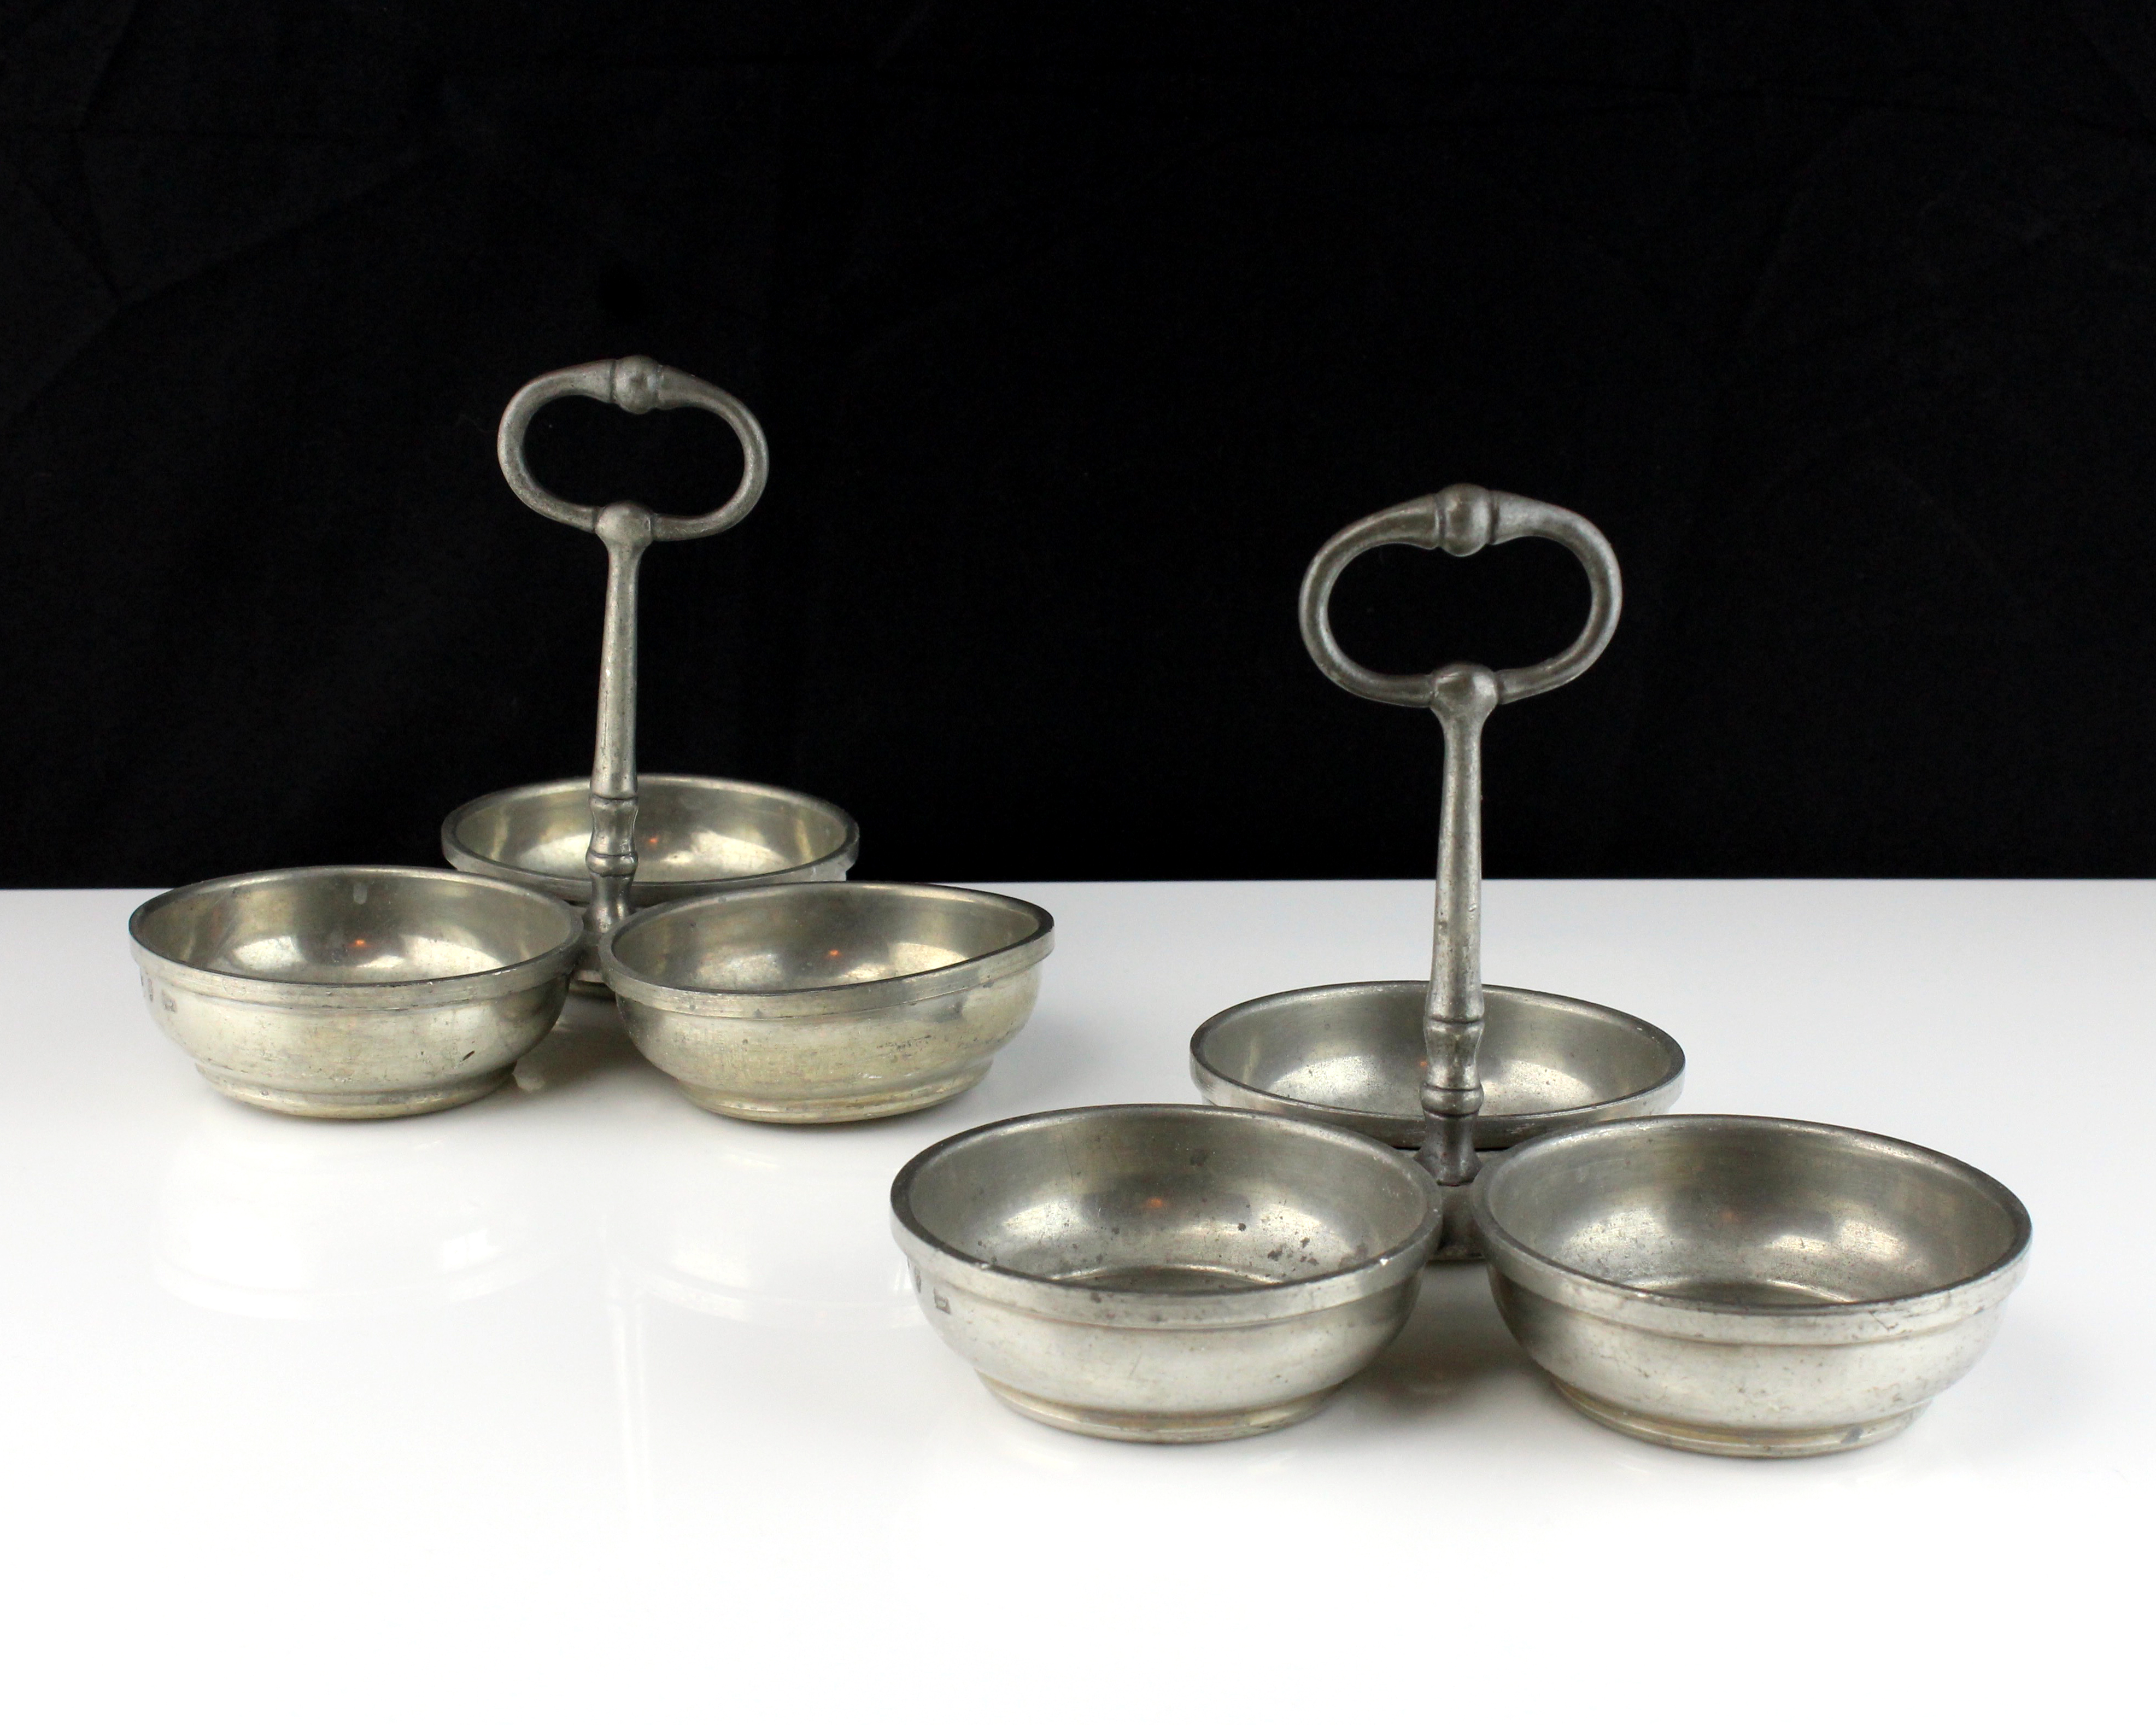 A pair of white metal condiment dishes each designed as a trio of circular dishes with a central